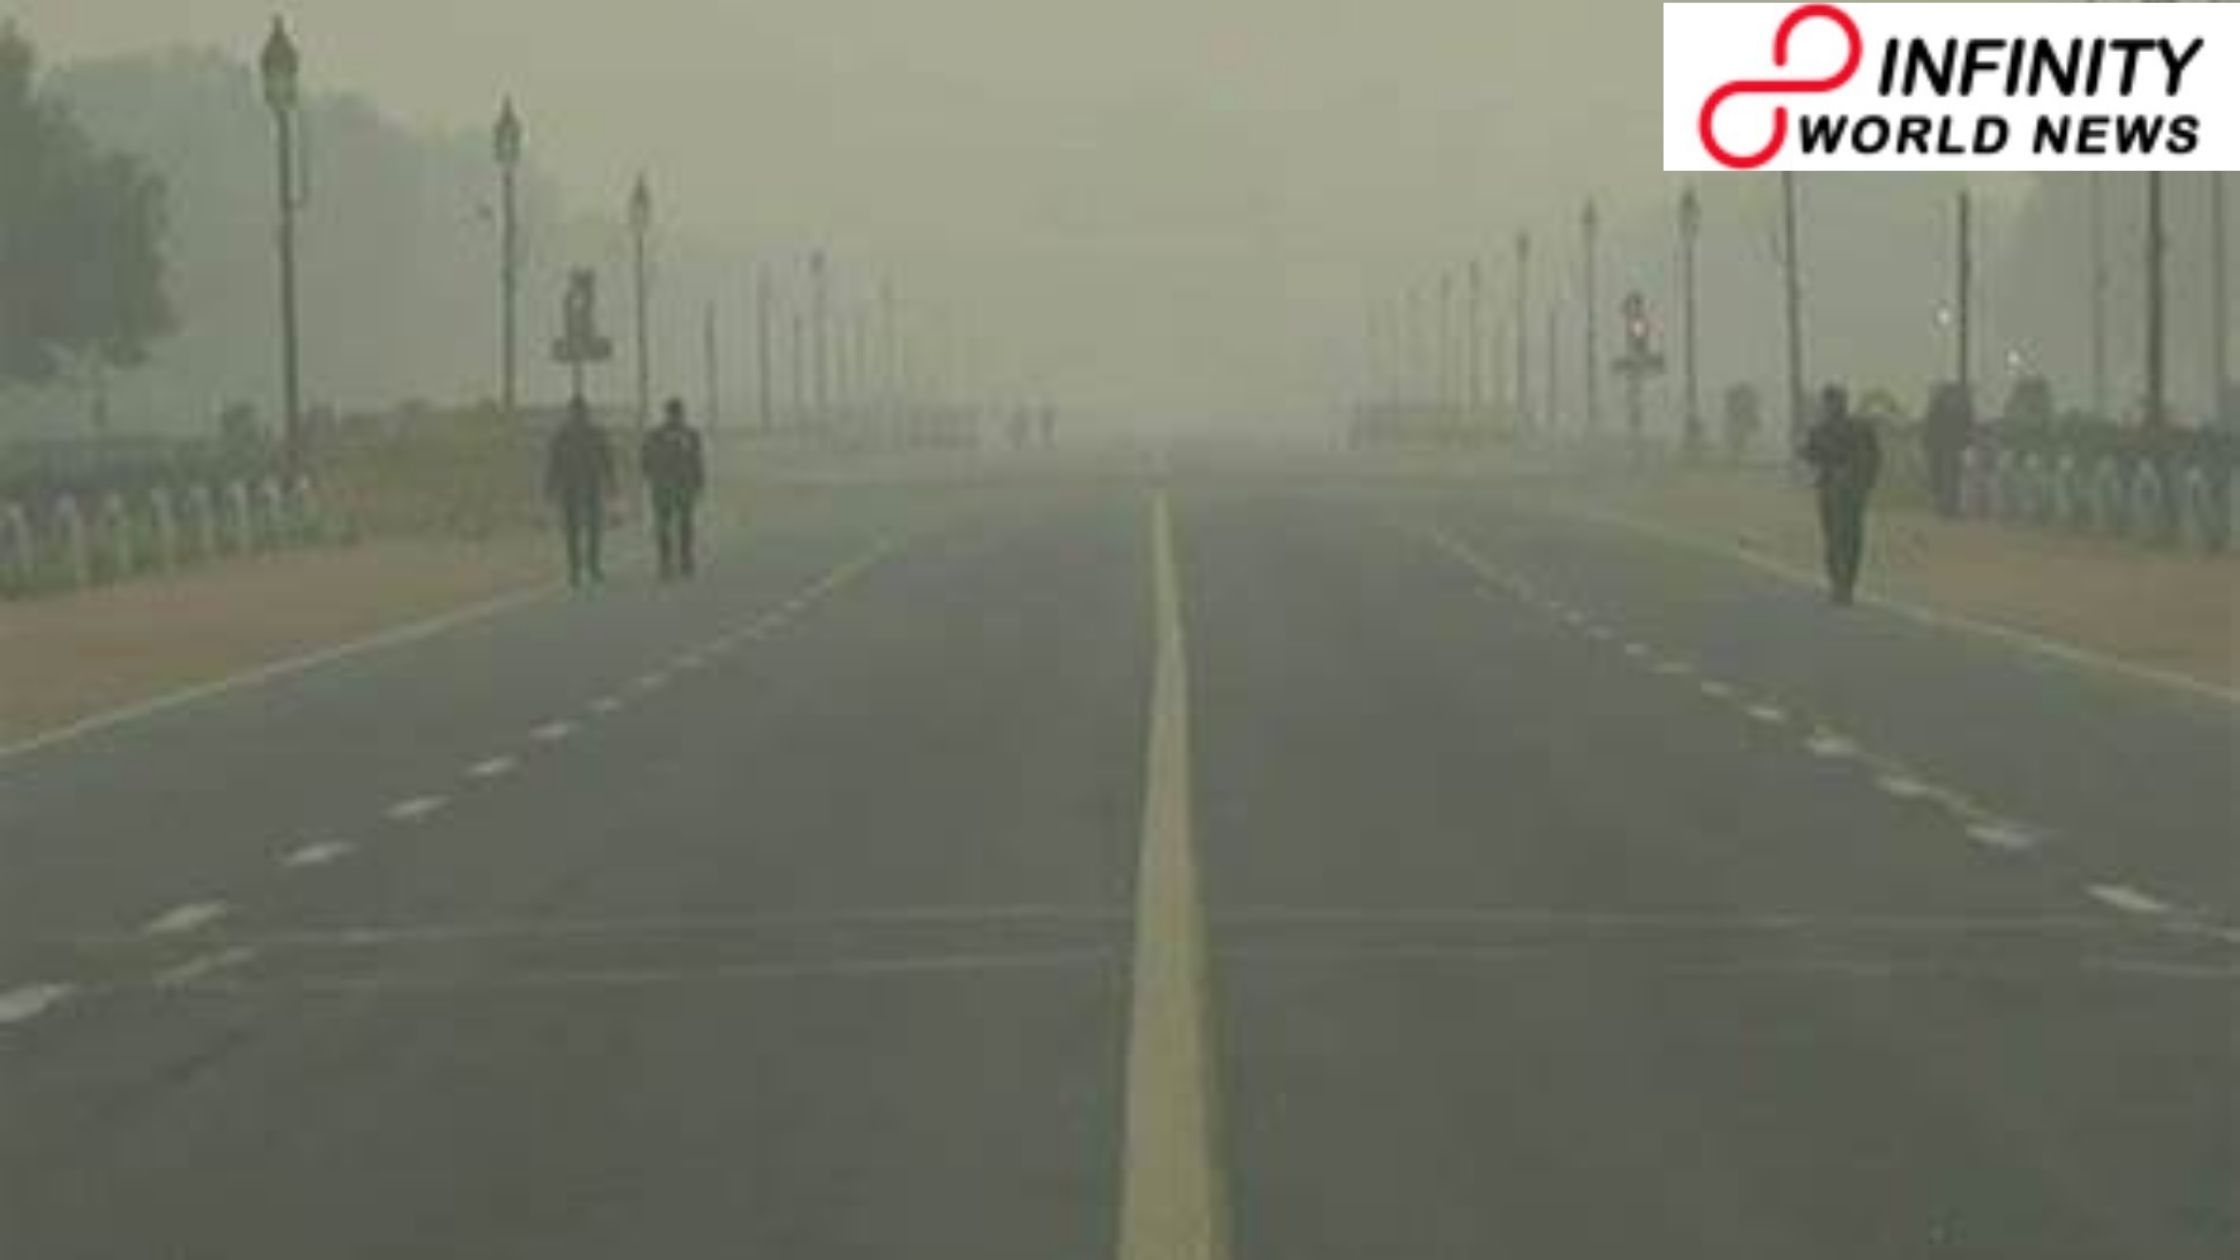 Delhi's Temperature Dips Distinctly as Air Quality Continues 'Moderate'; More Cold, Pollution Forecast This Week